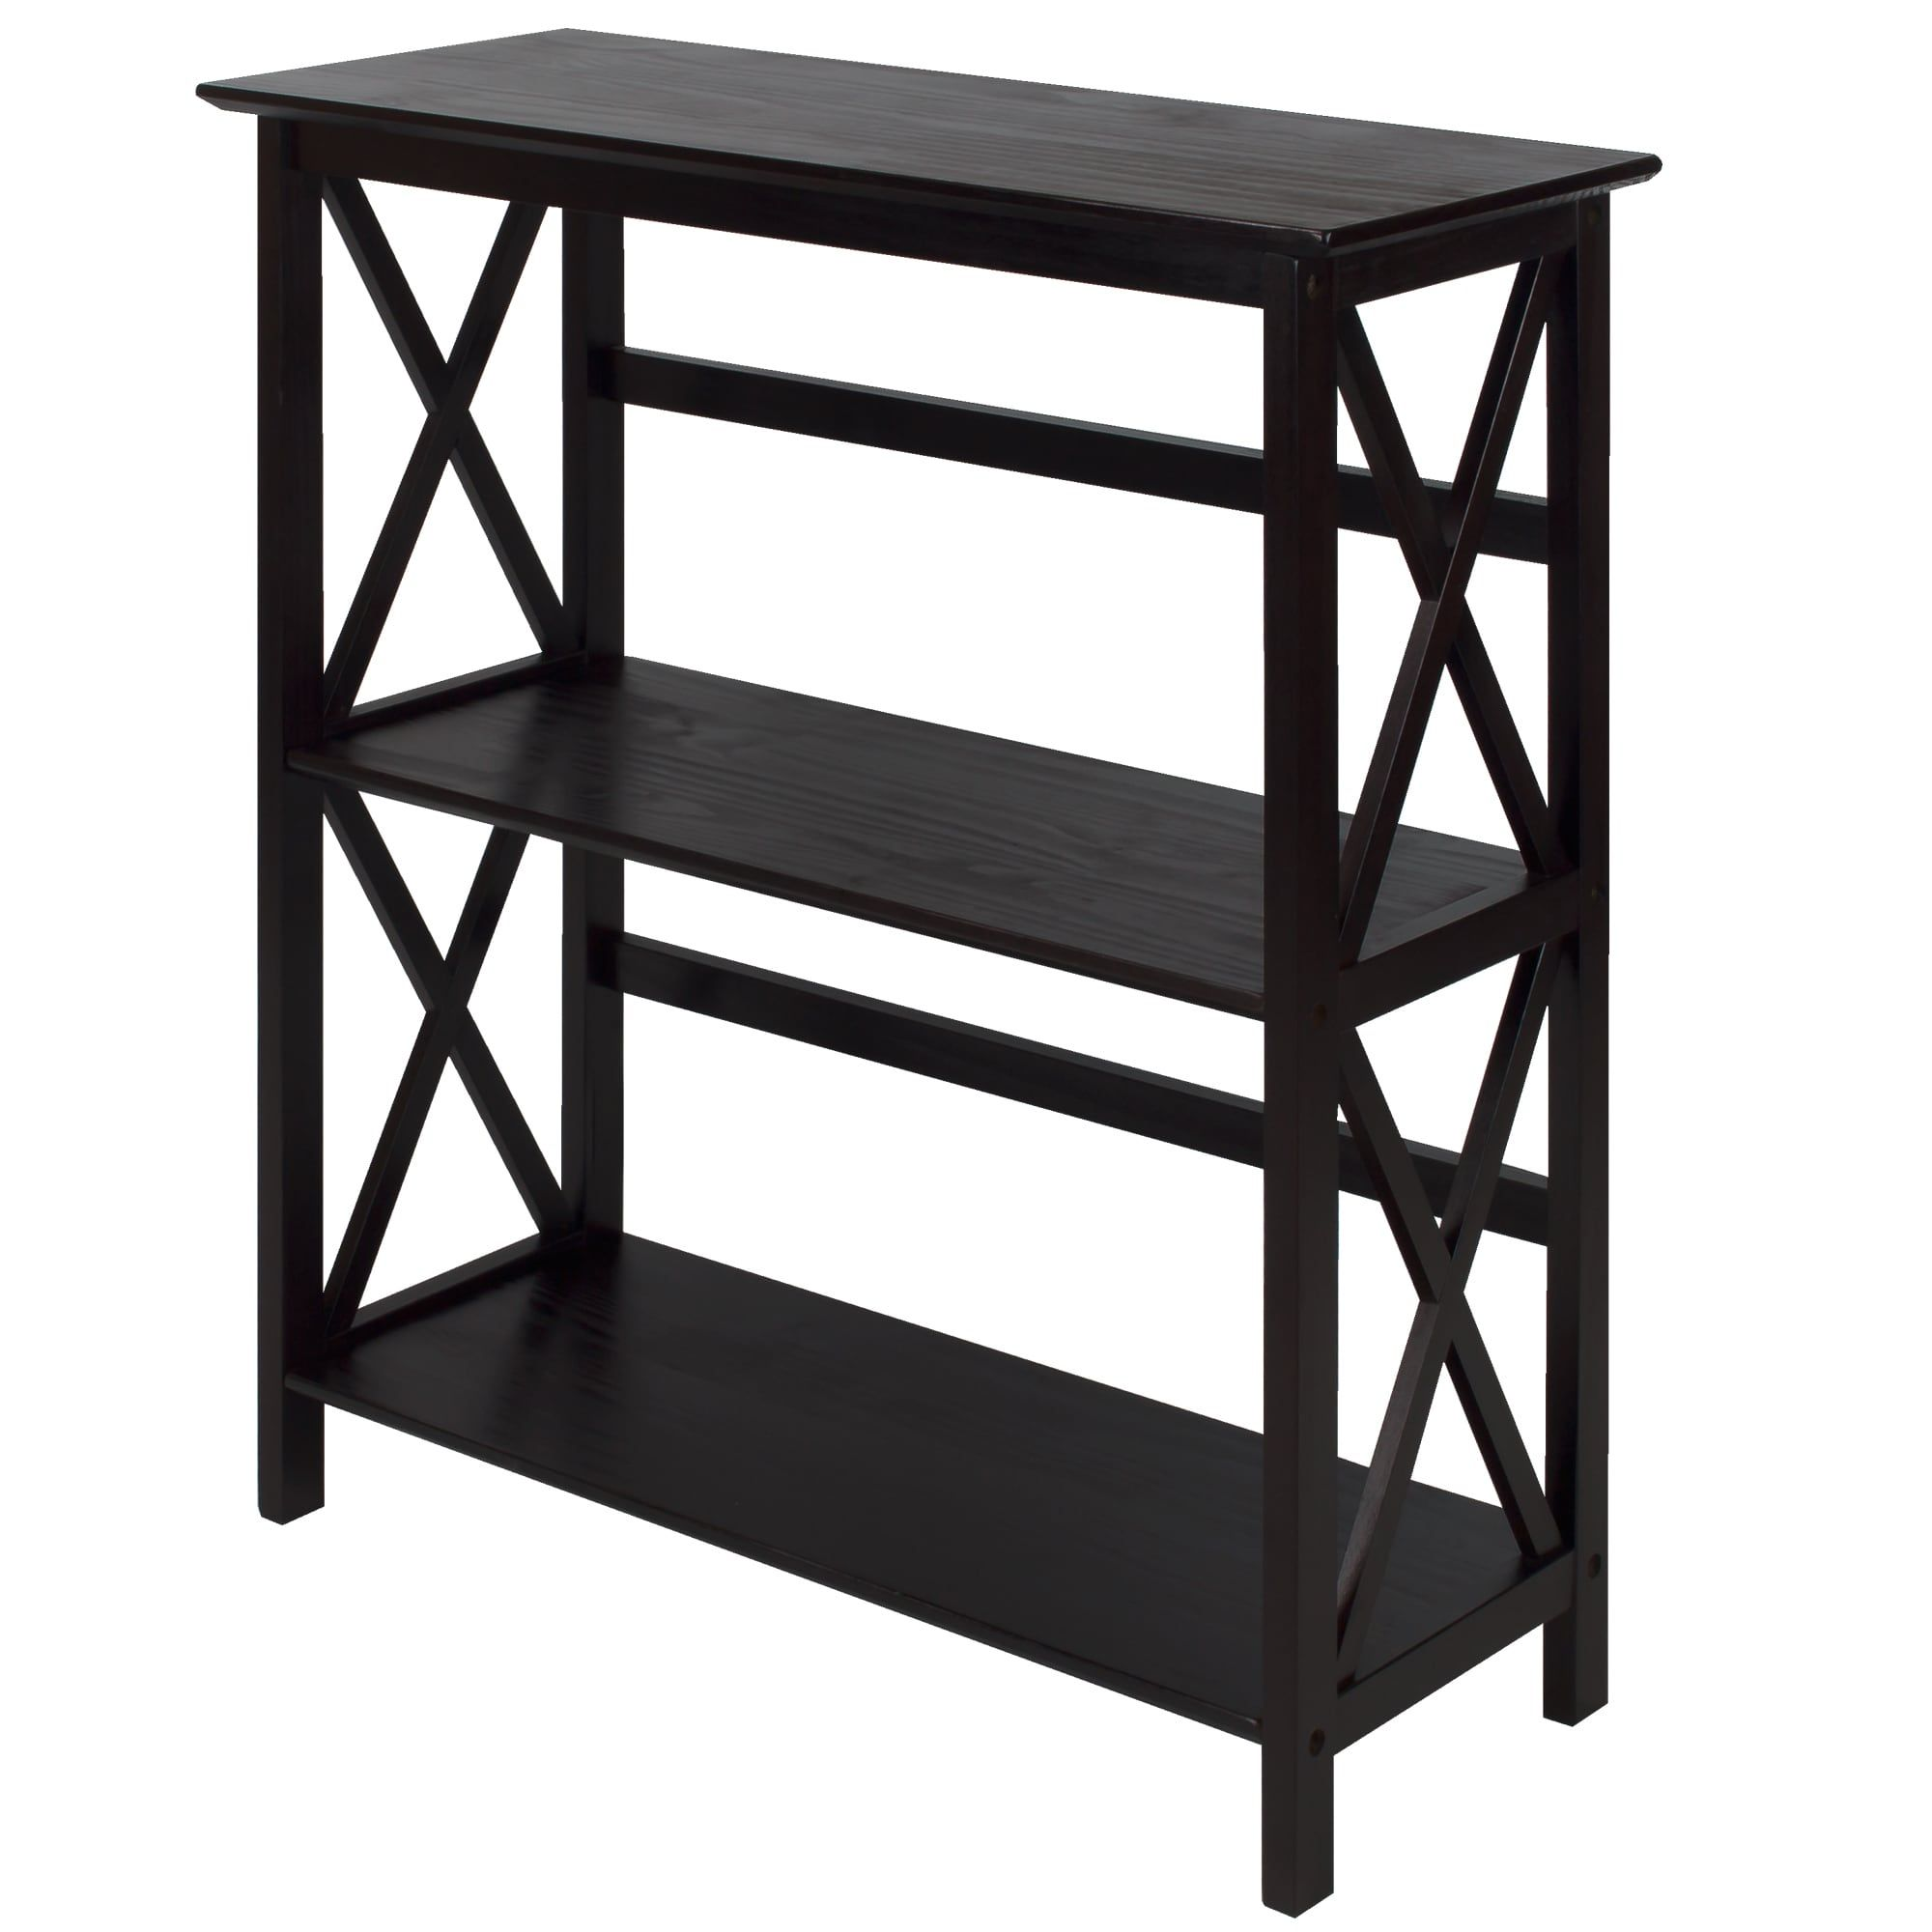 home overstock garden iris over wood dark shelf free tier bookcases com brown shipping product storage orders on bookcase